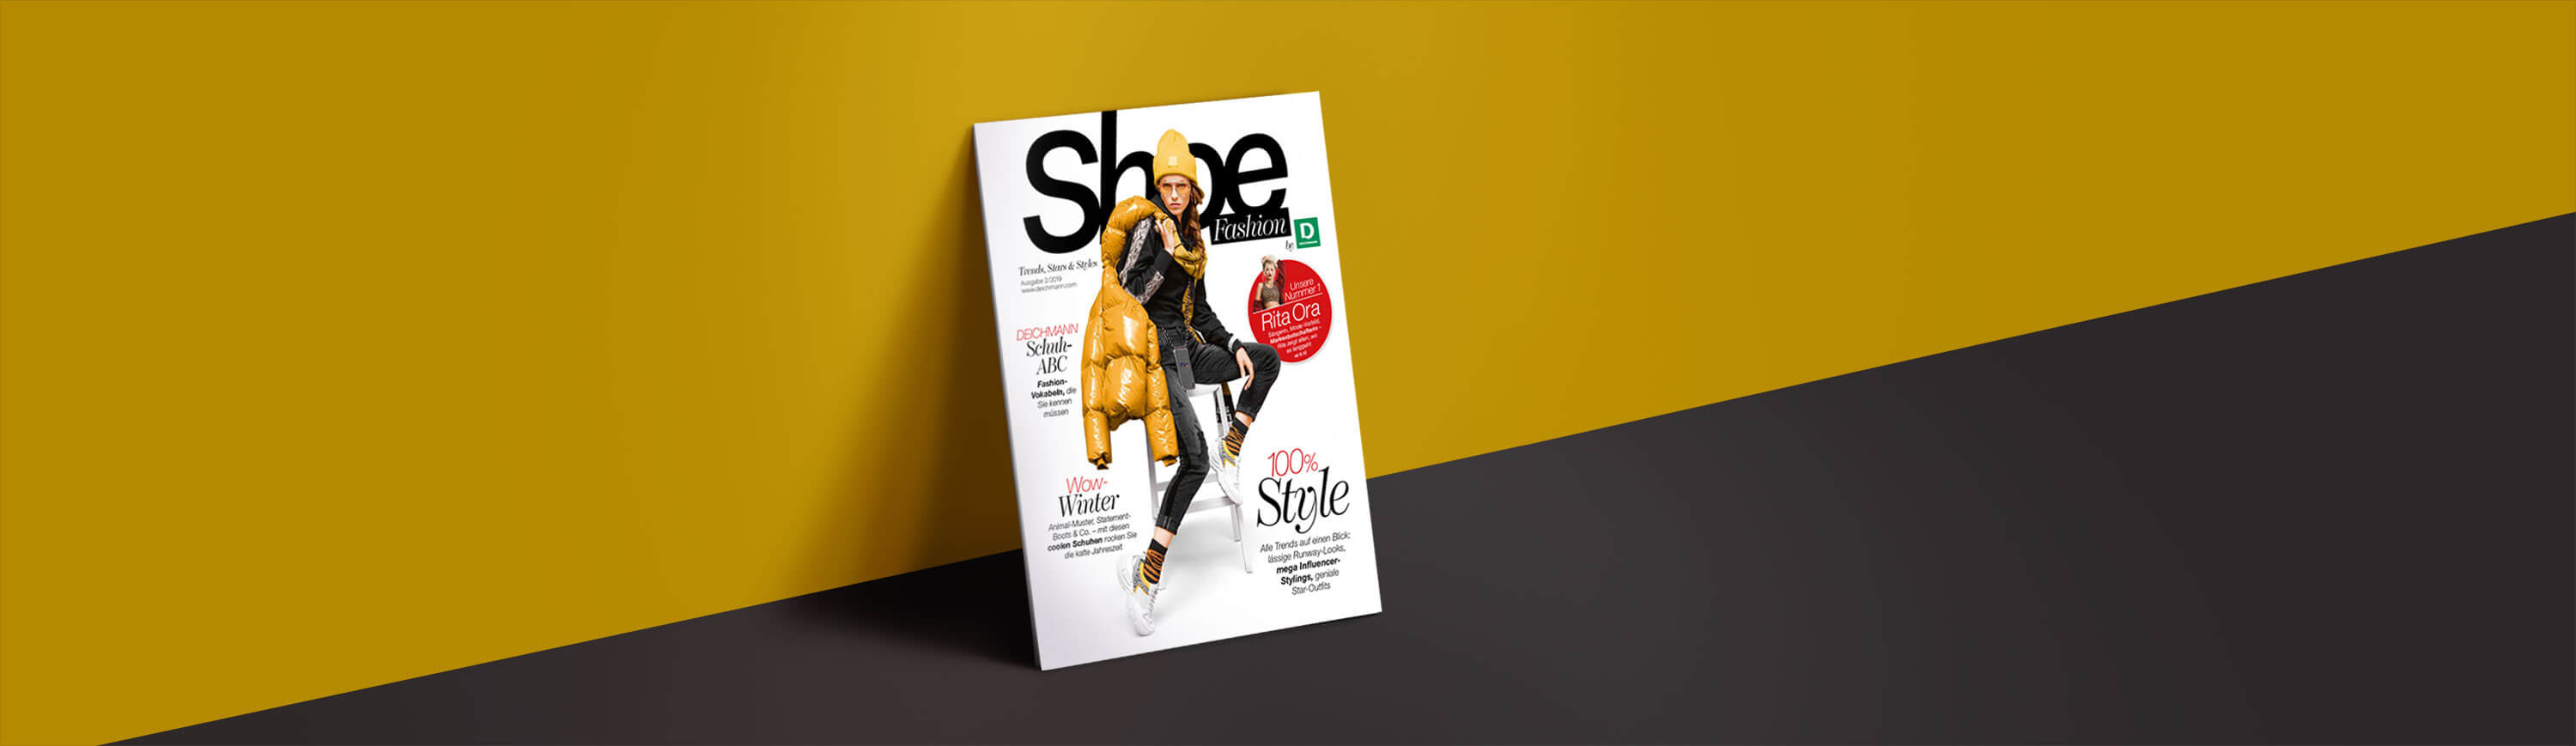 Shoe Fashion Ausgabe 2/2019